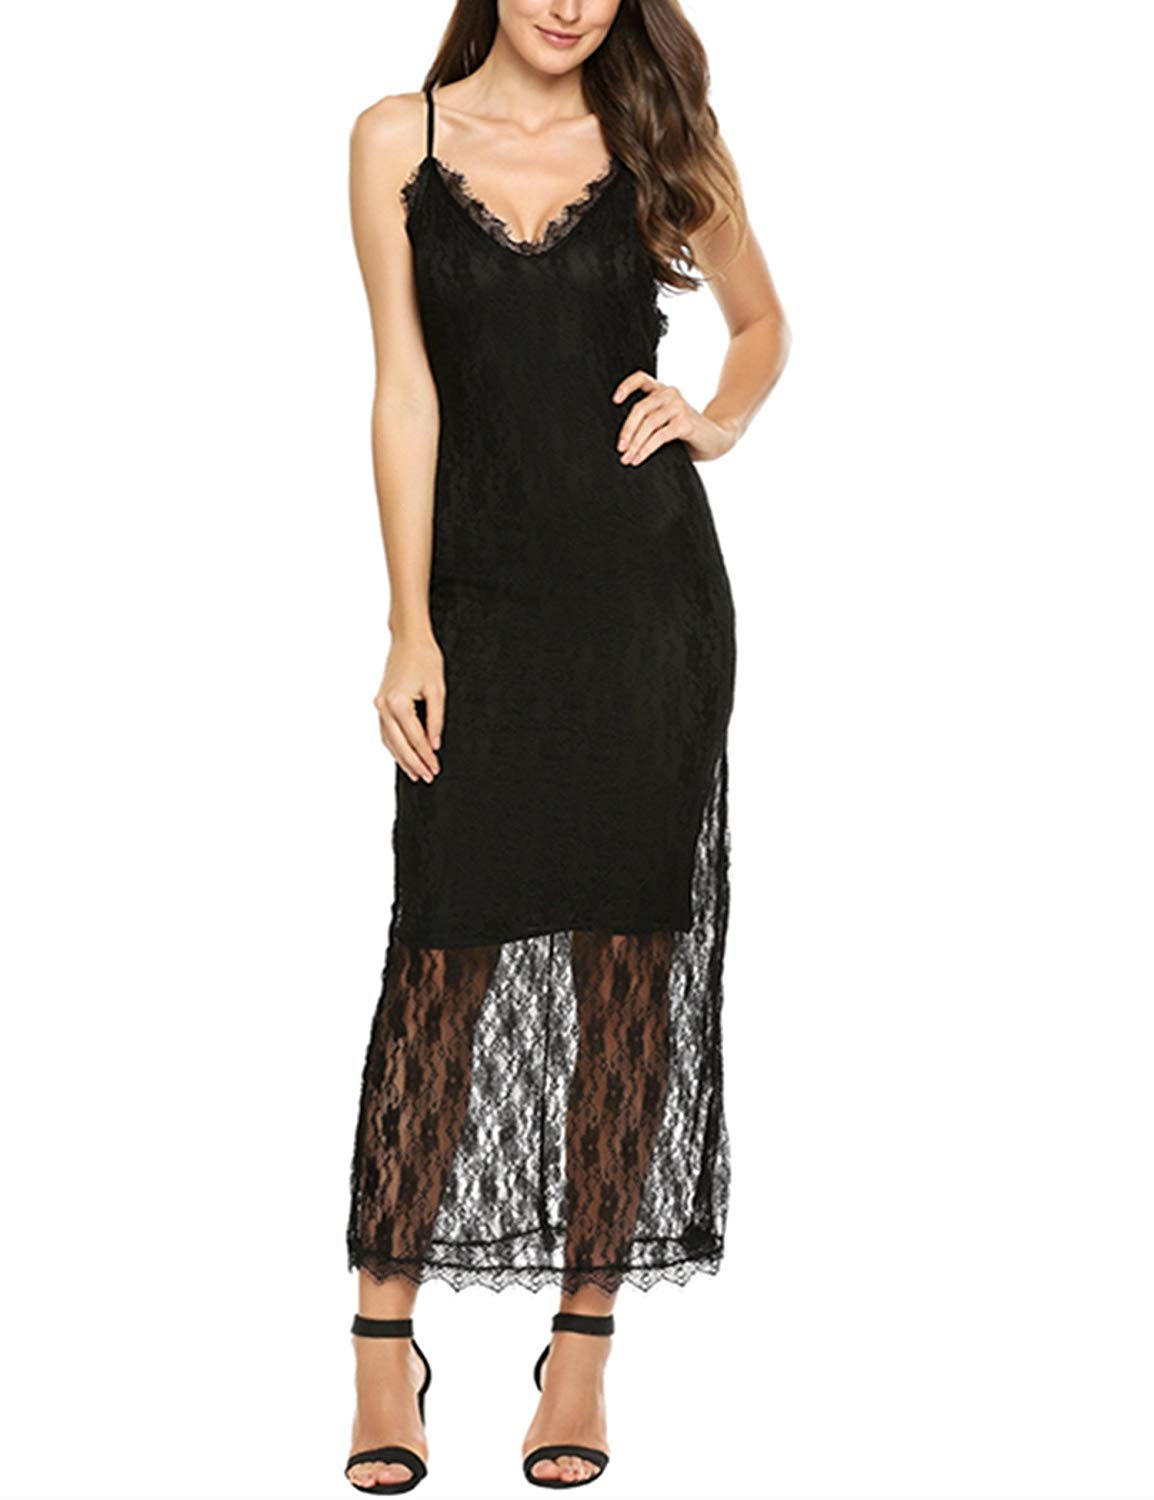 a65cfc9060 Get Quotations · ANGVNS Womens Lace Trim Spaghetti Strap V Neck Backless  Bandage Maxi Cami Dress